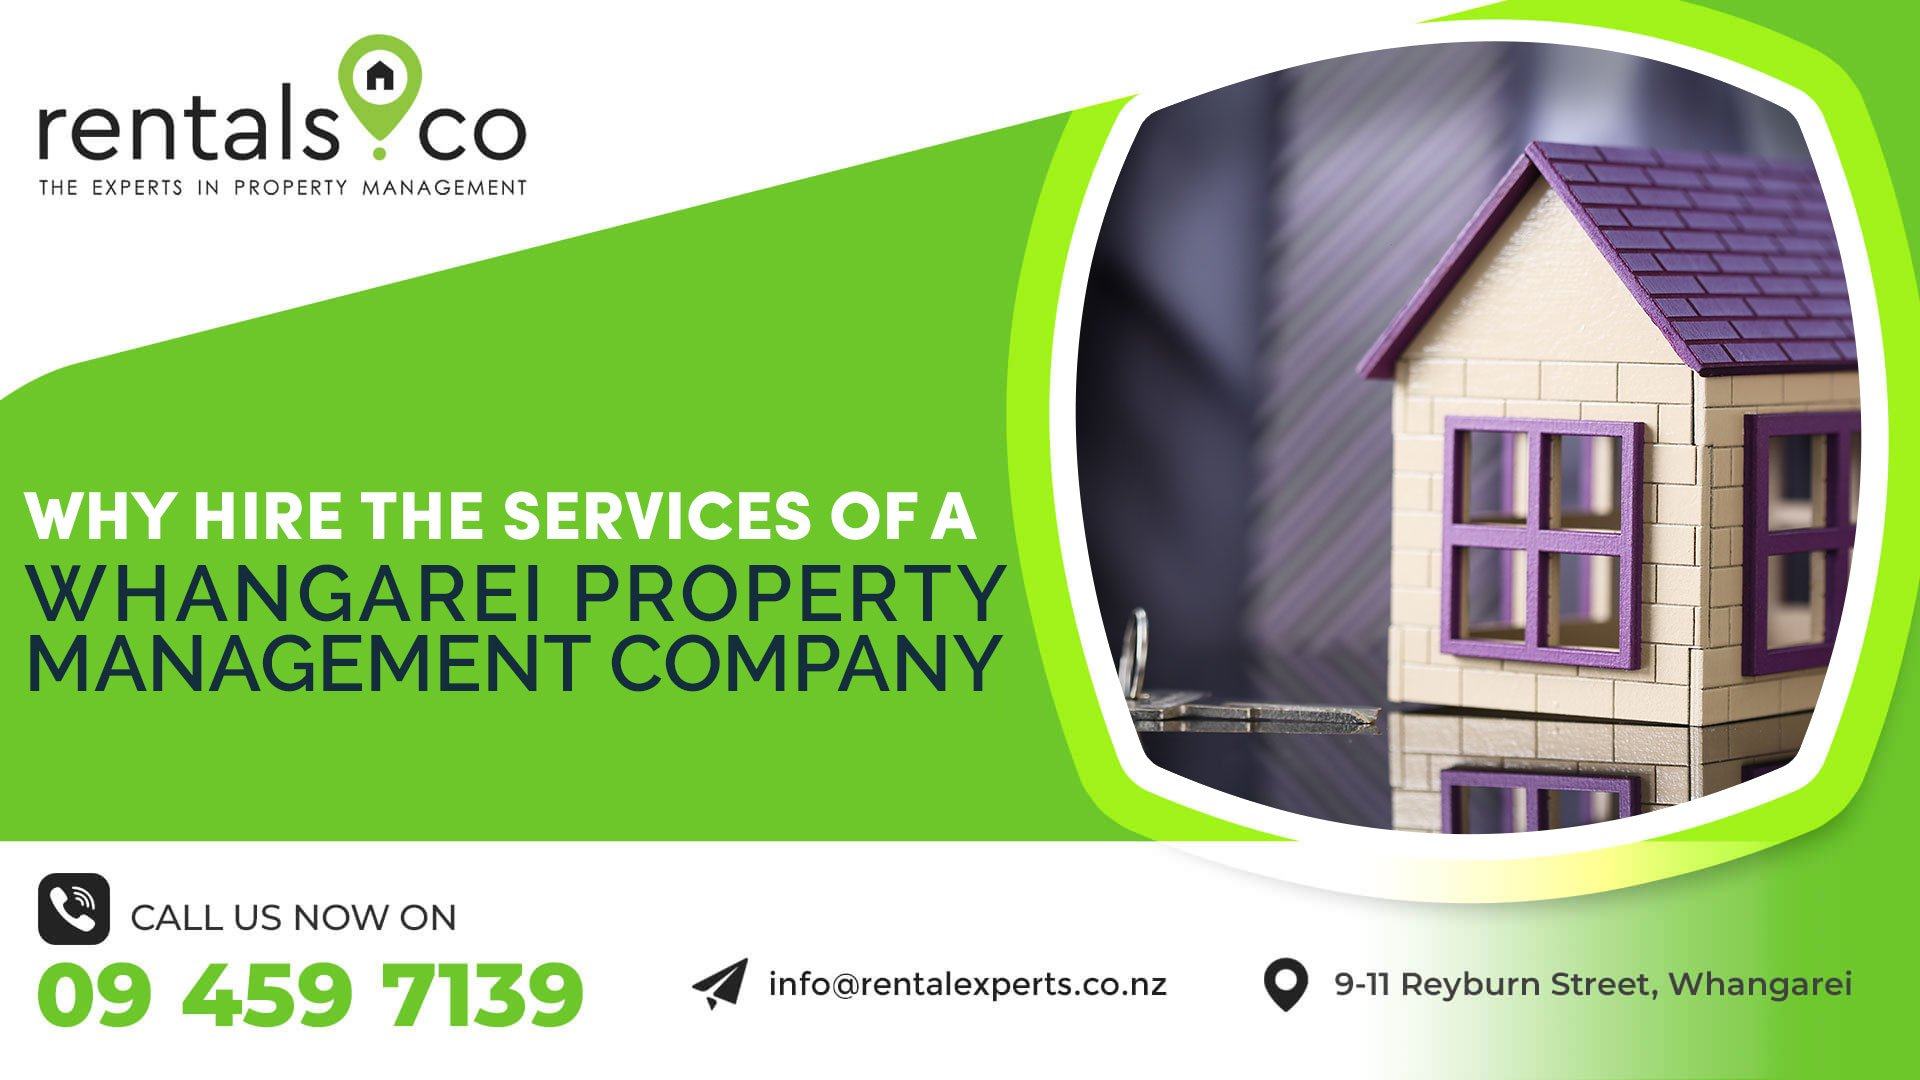 Why Hire the Services of a Whangarei Property Management Company?